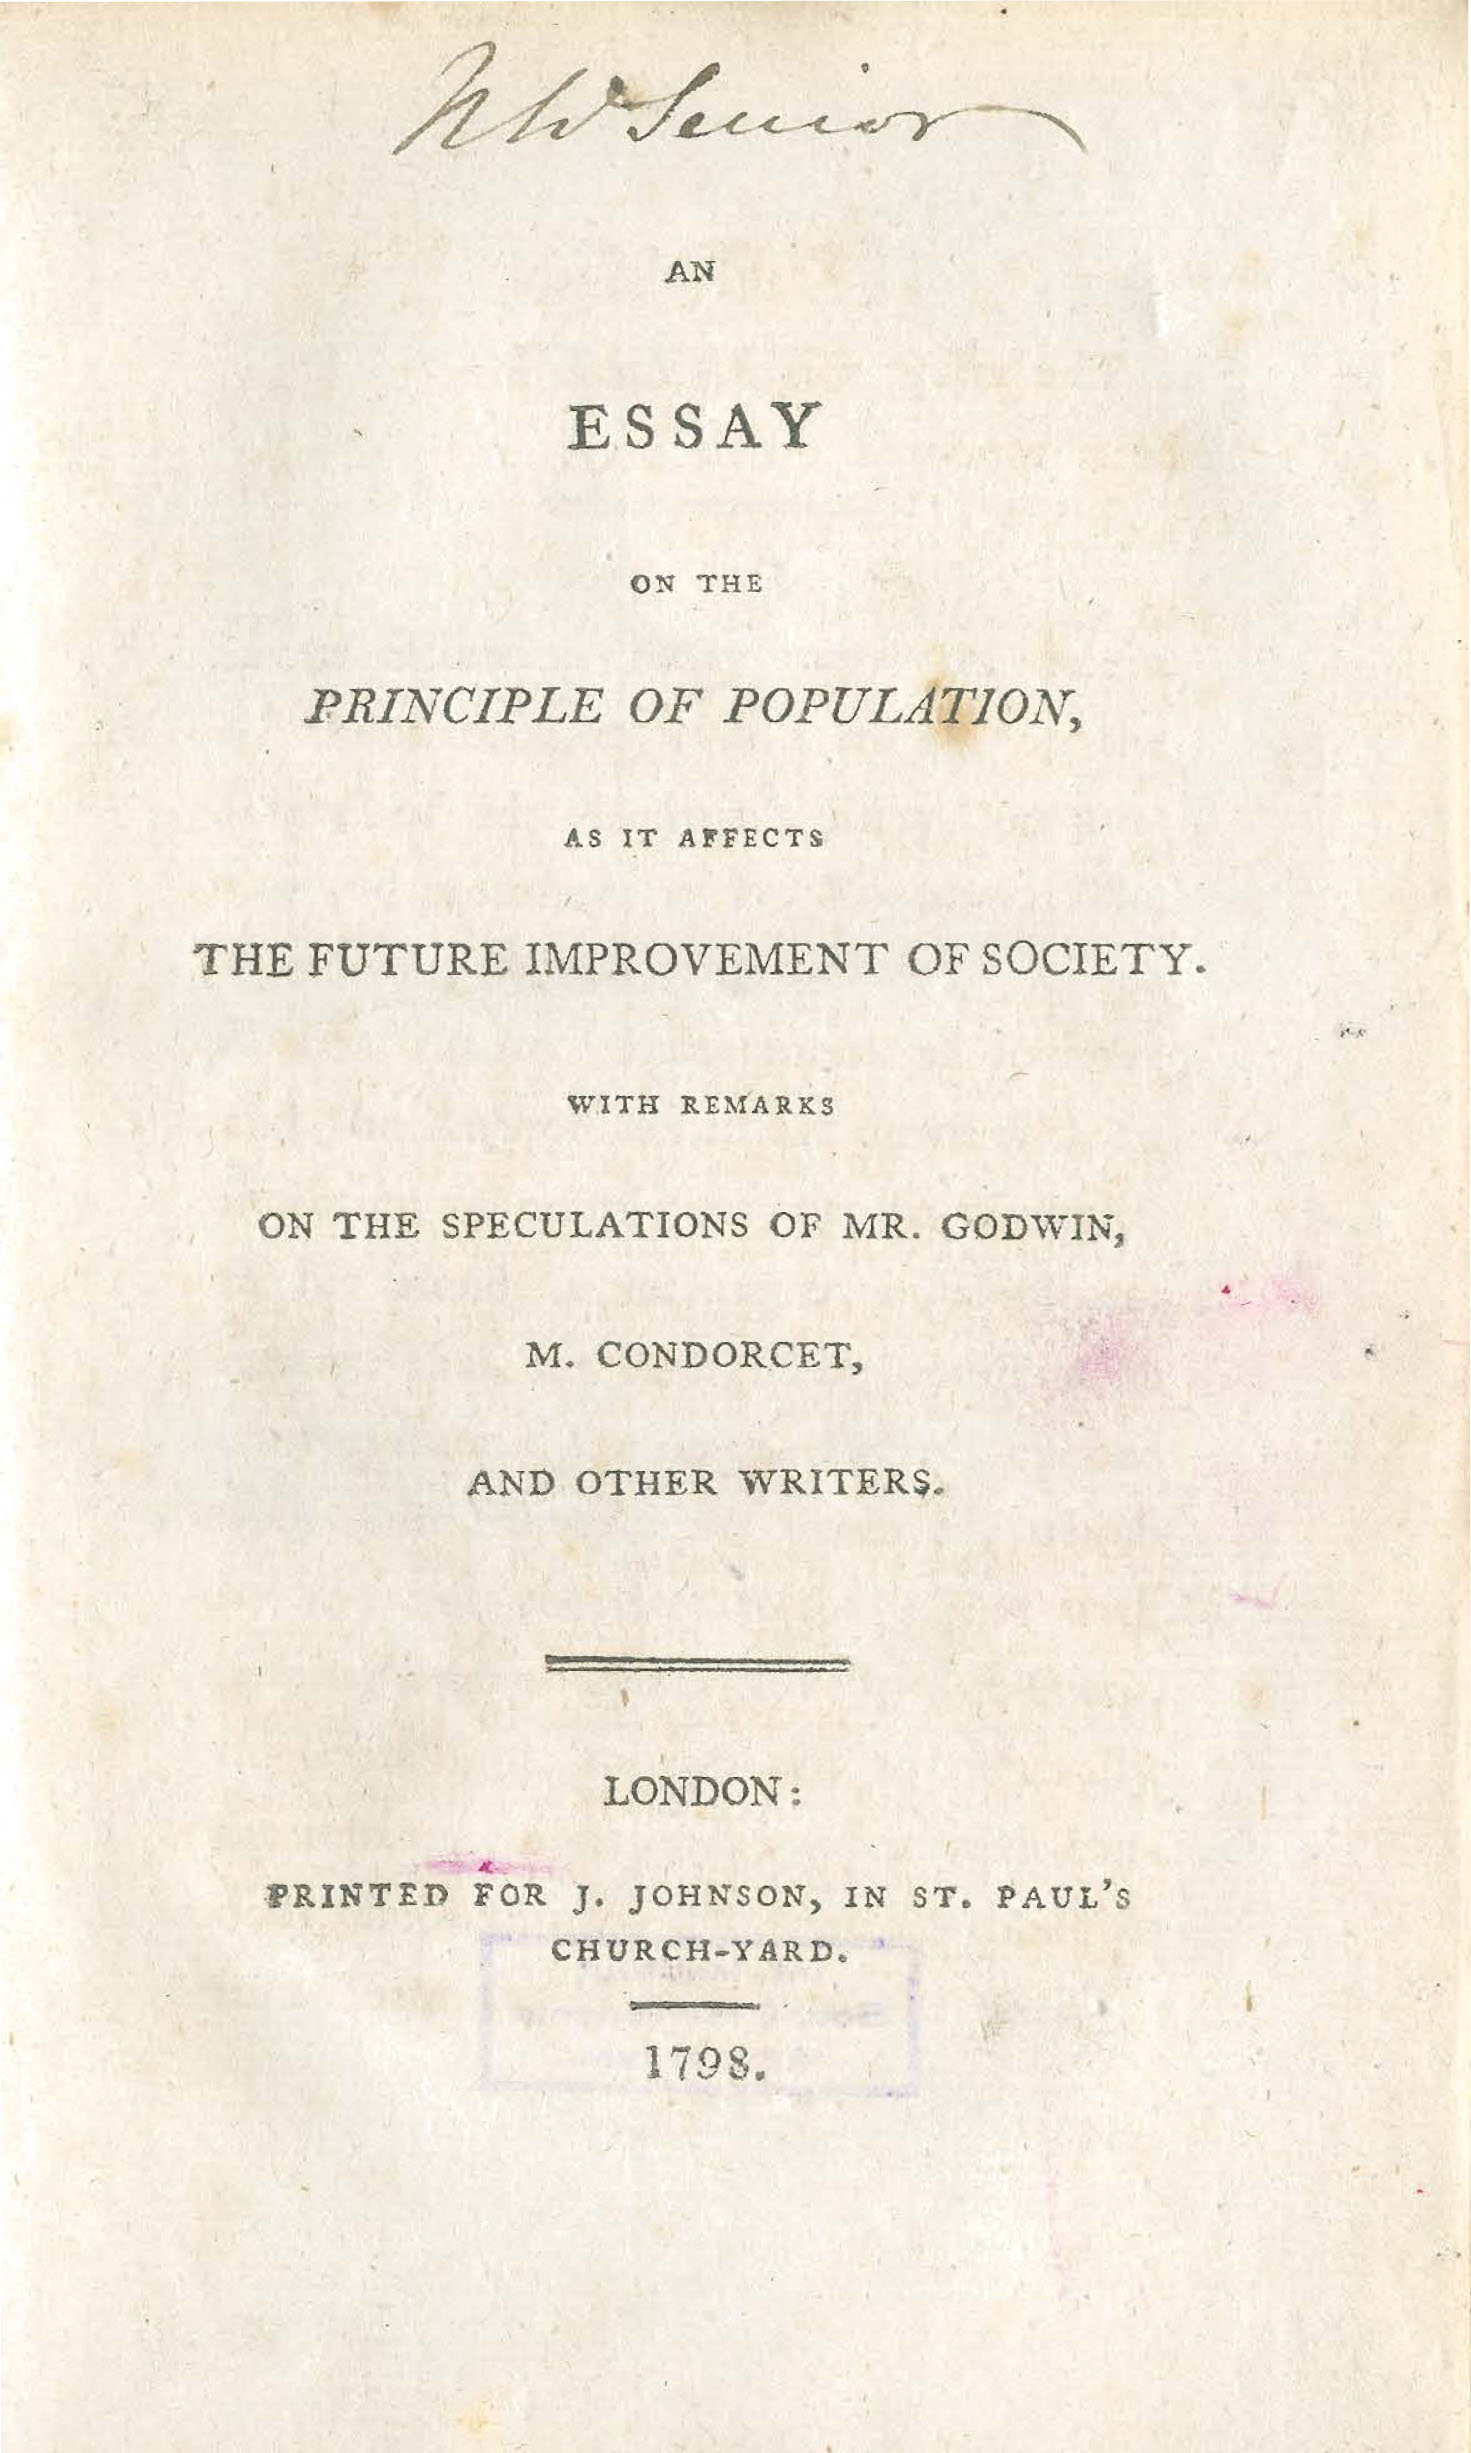 001 An Essay On The Principle Of Population Fascinating By Thomas Malthus Pdf In Concluded Which Following Full